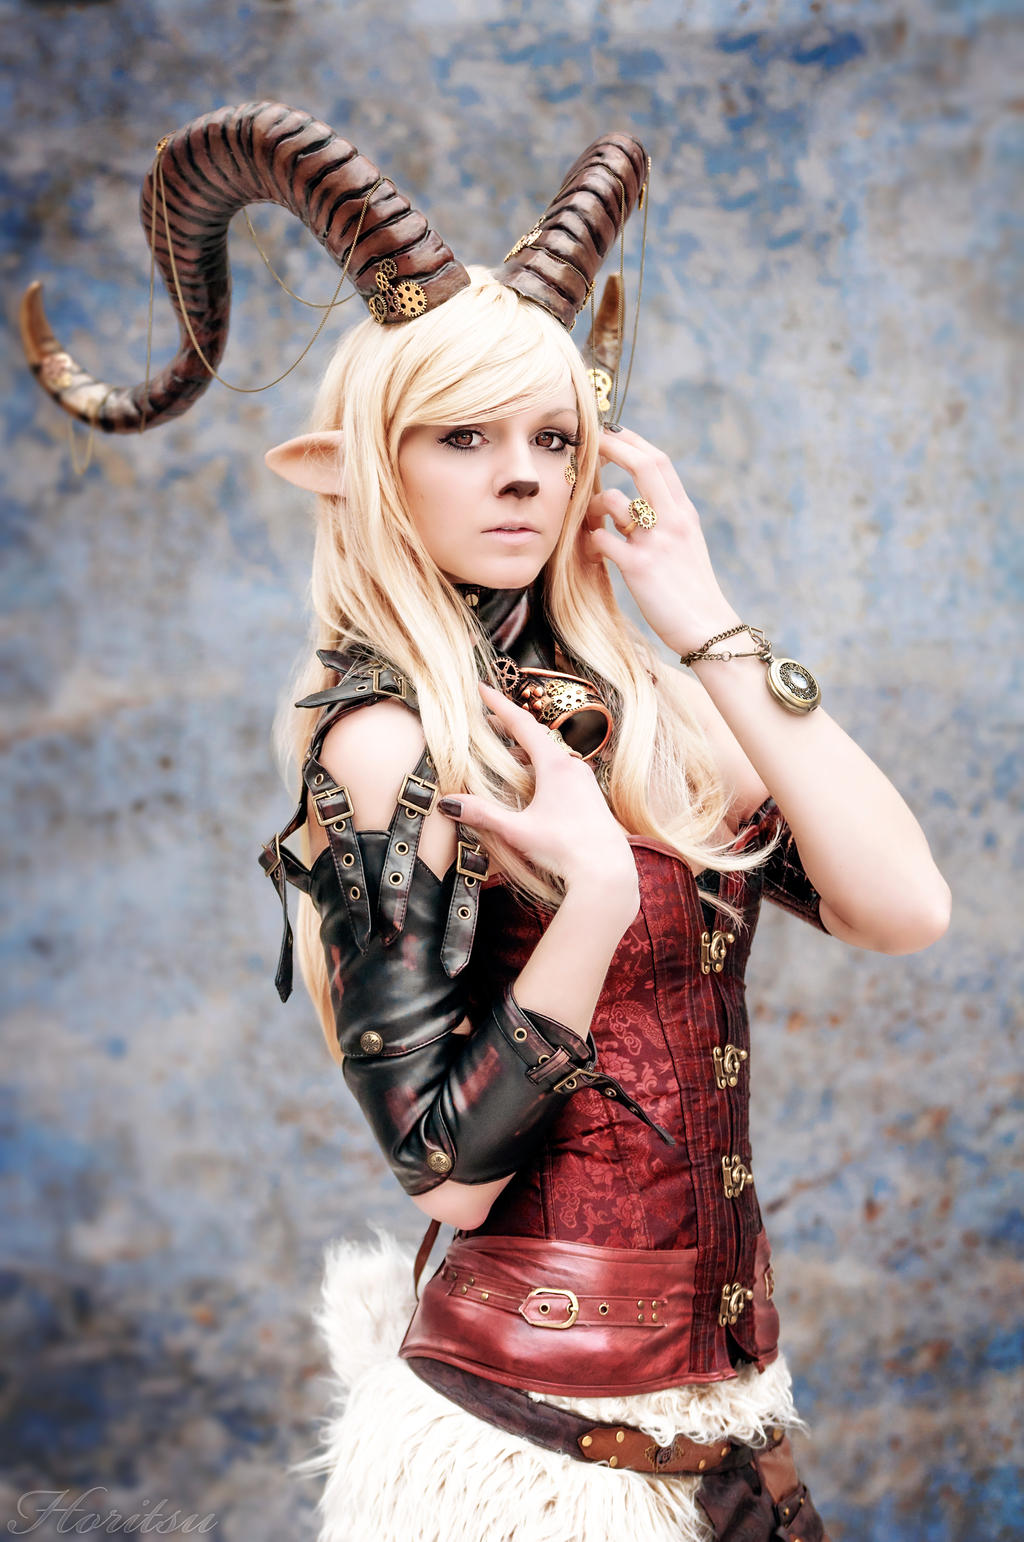 Dark Faun Cosplay – Scribe Of Tales |Faun Cosplay